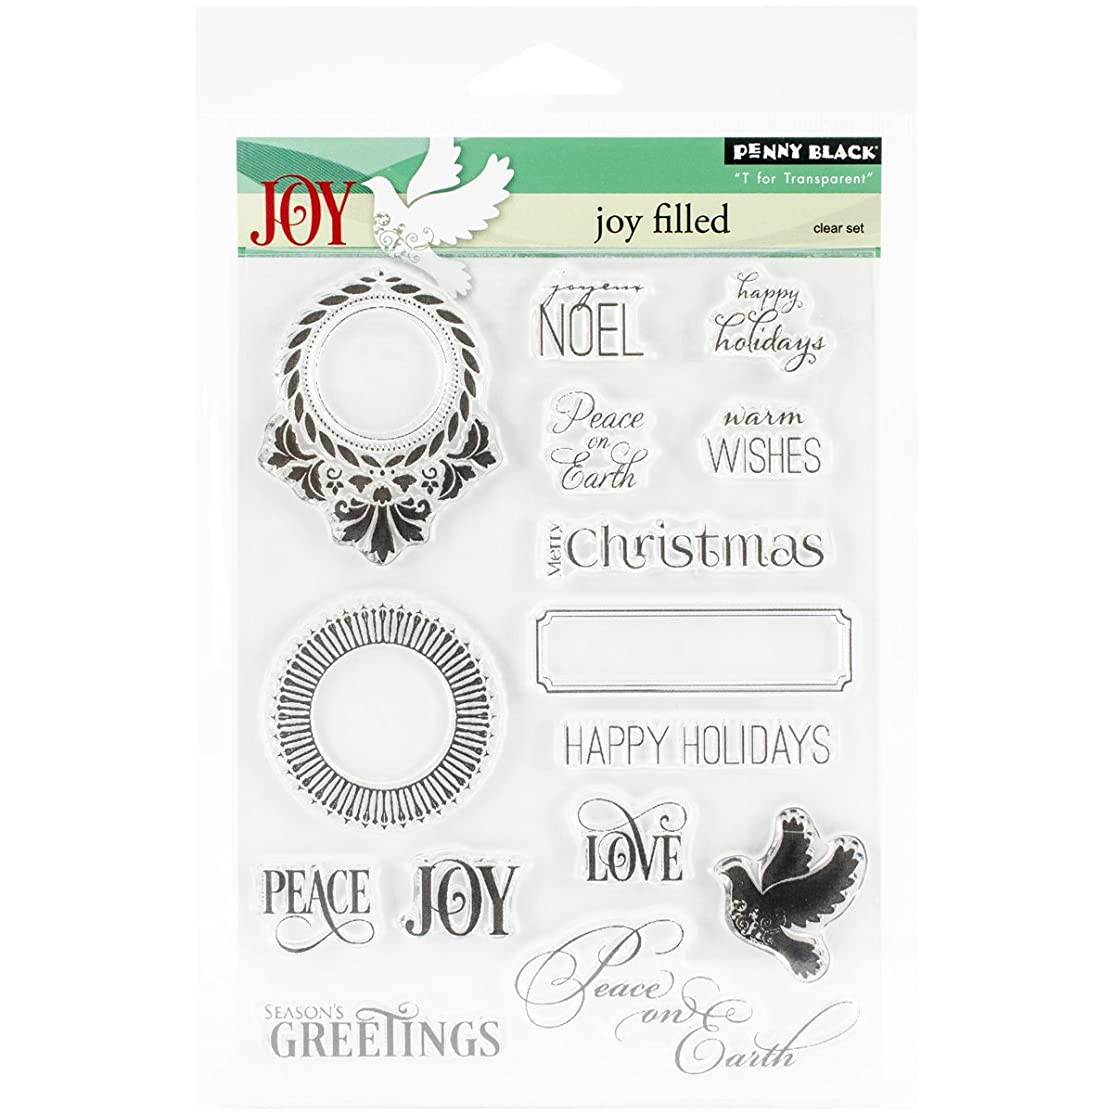 Penny Black 30-257 Decorative Rubber Stamps, Jolly Filled